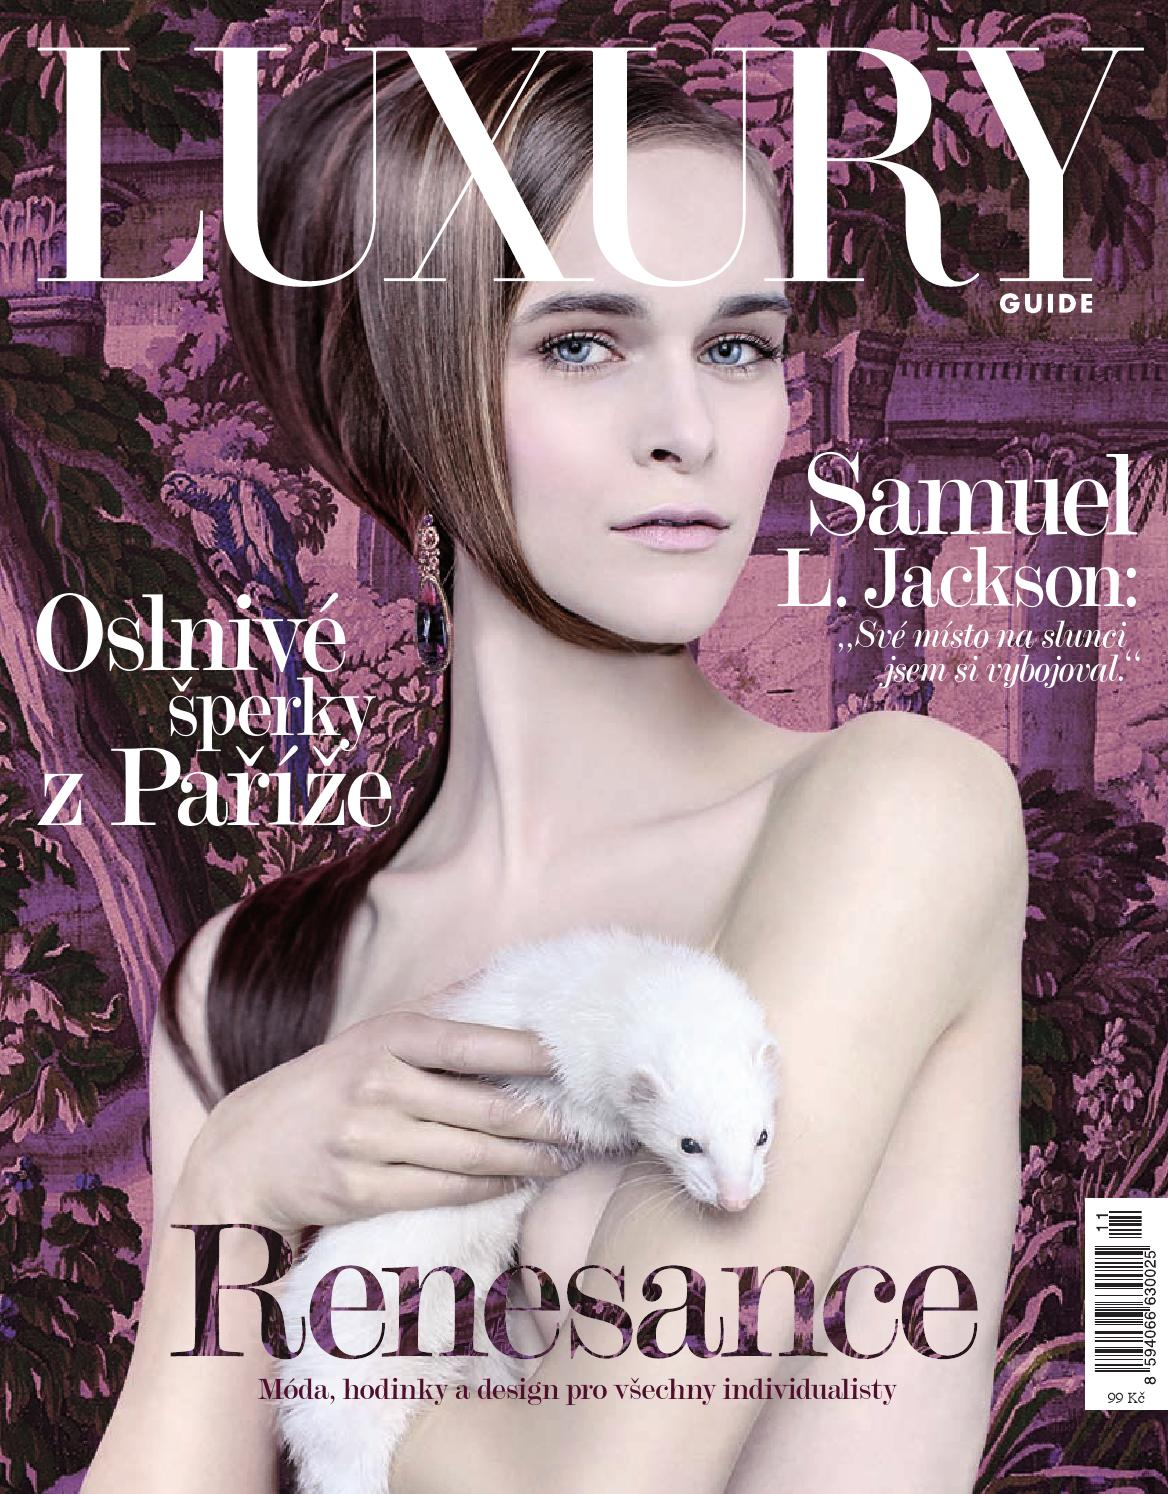 Luxury Guide 11 2014 by Kamil Sojka - issuu 4cba6b6d03